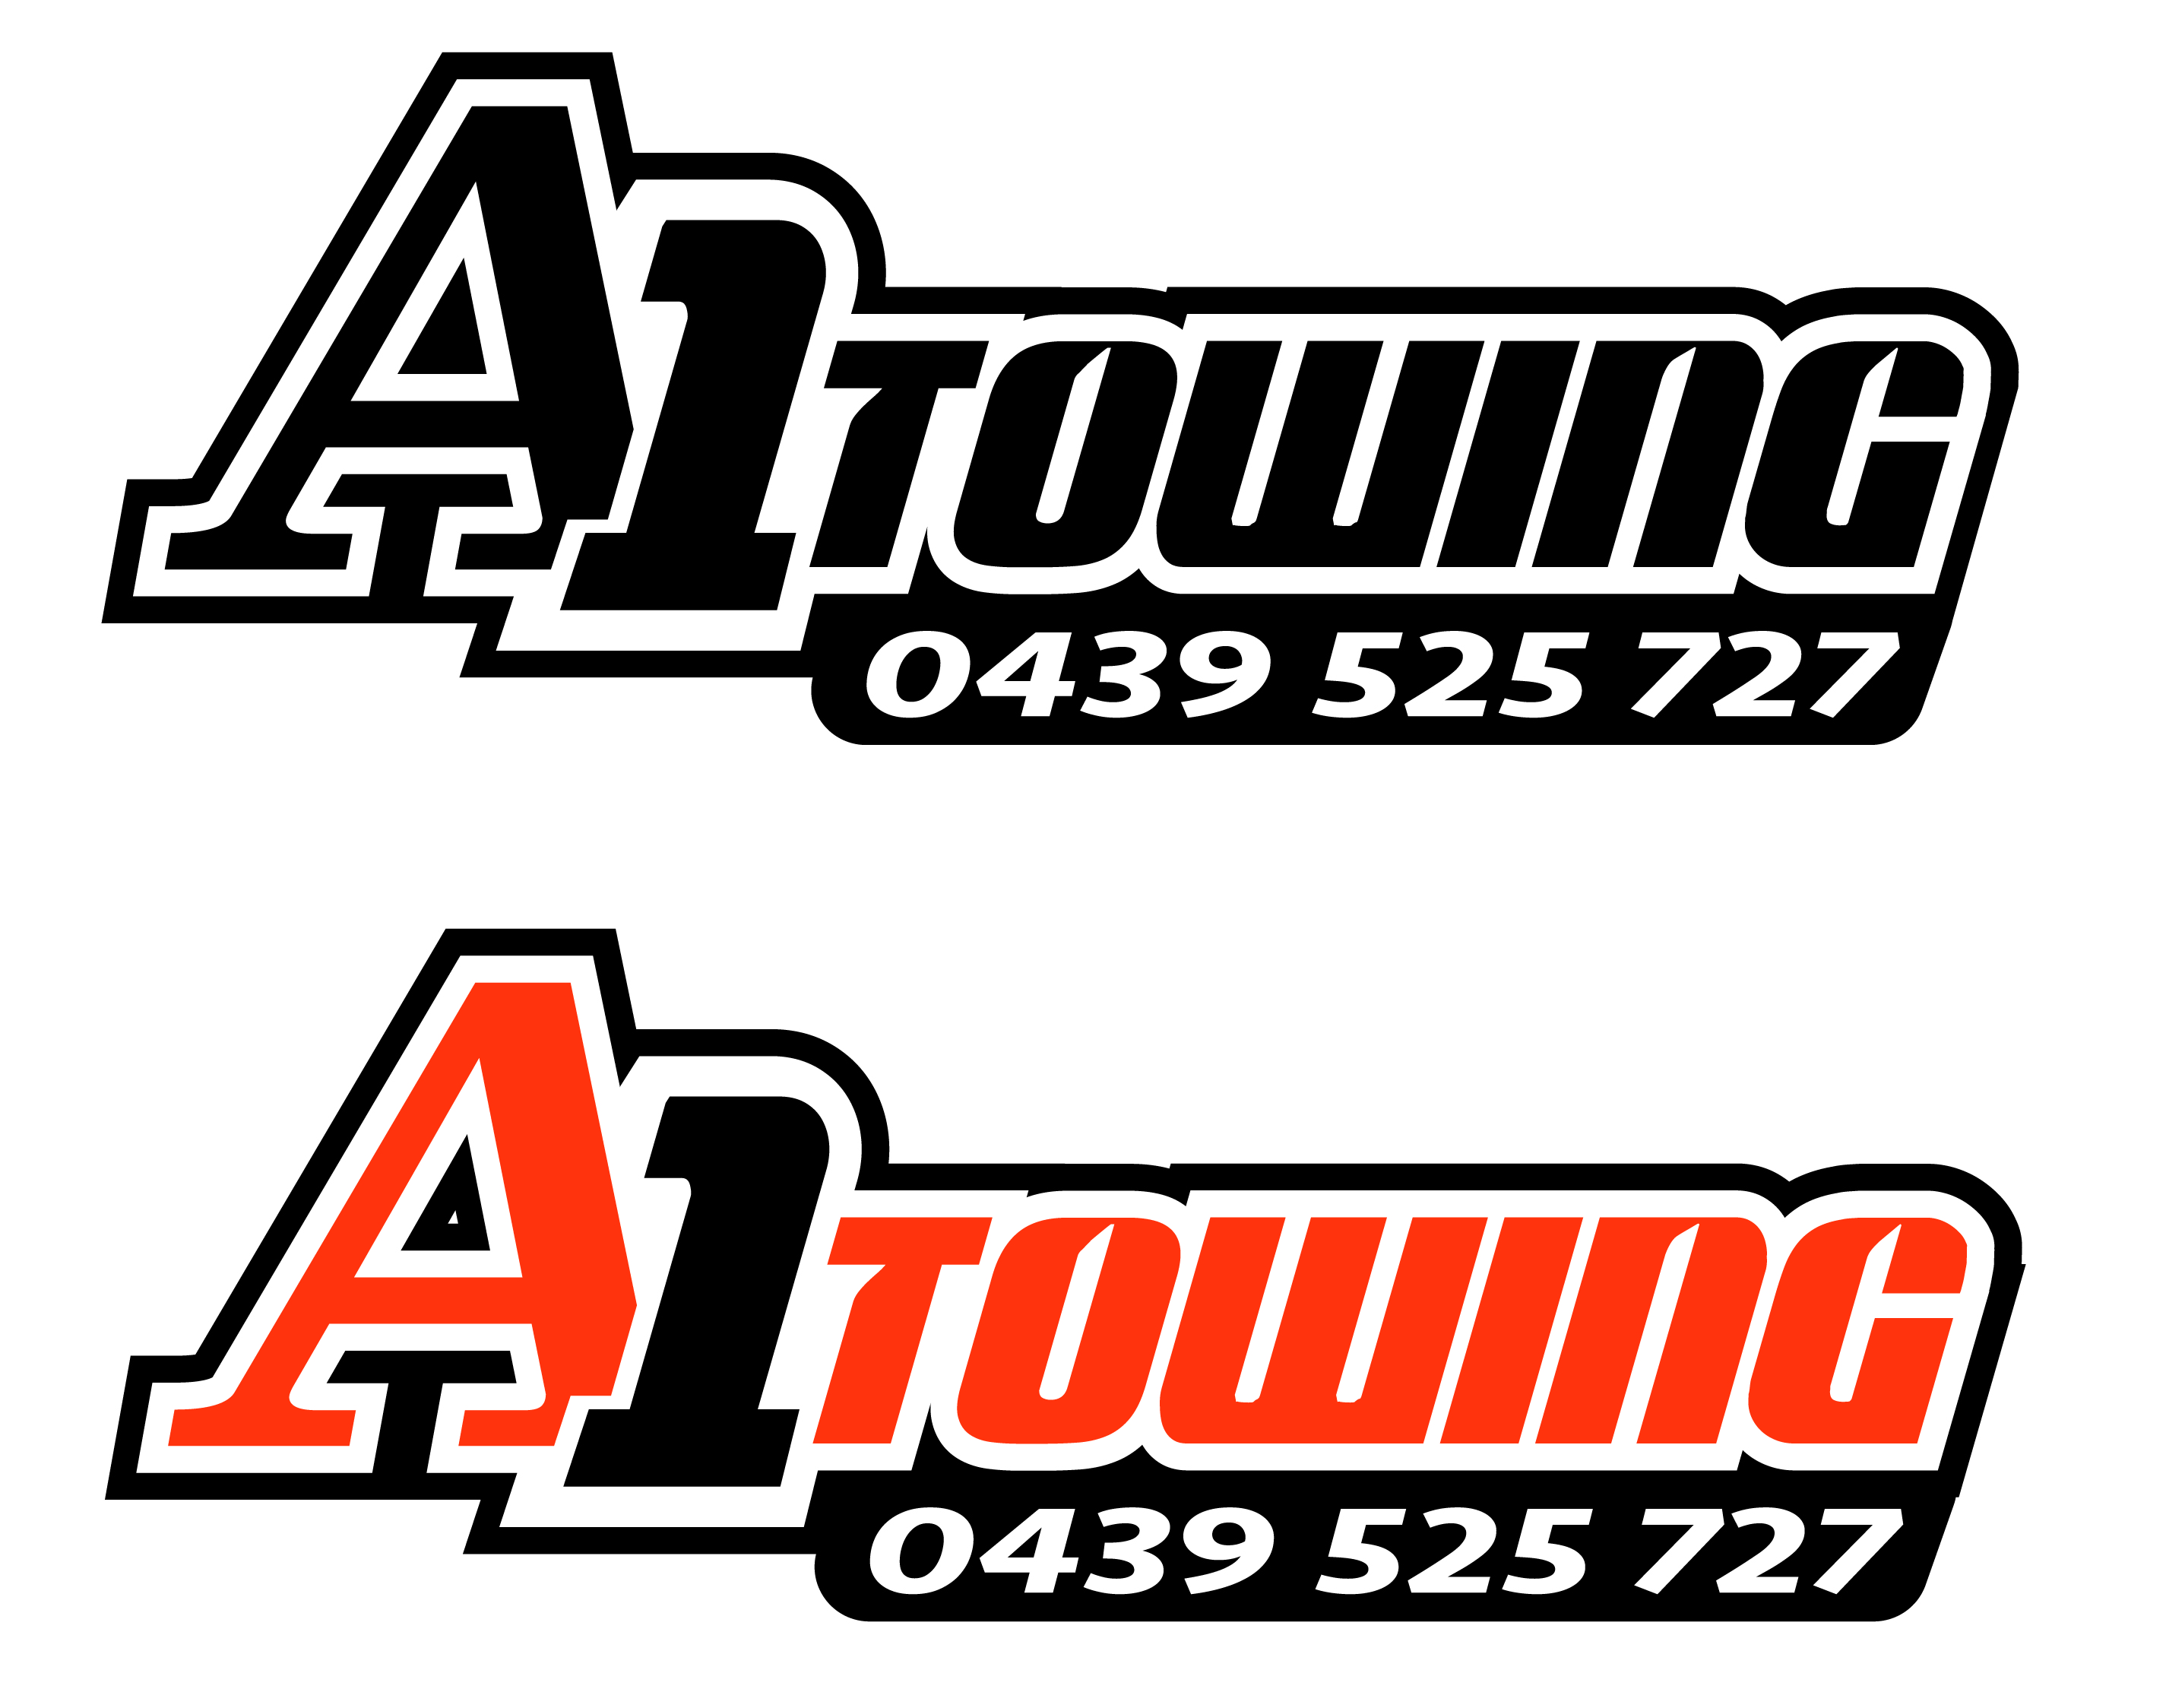 A1towing-01